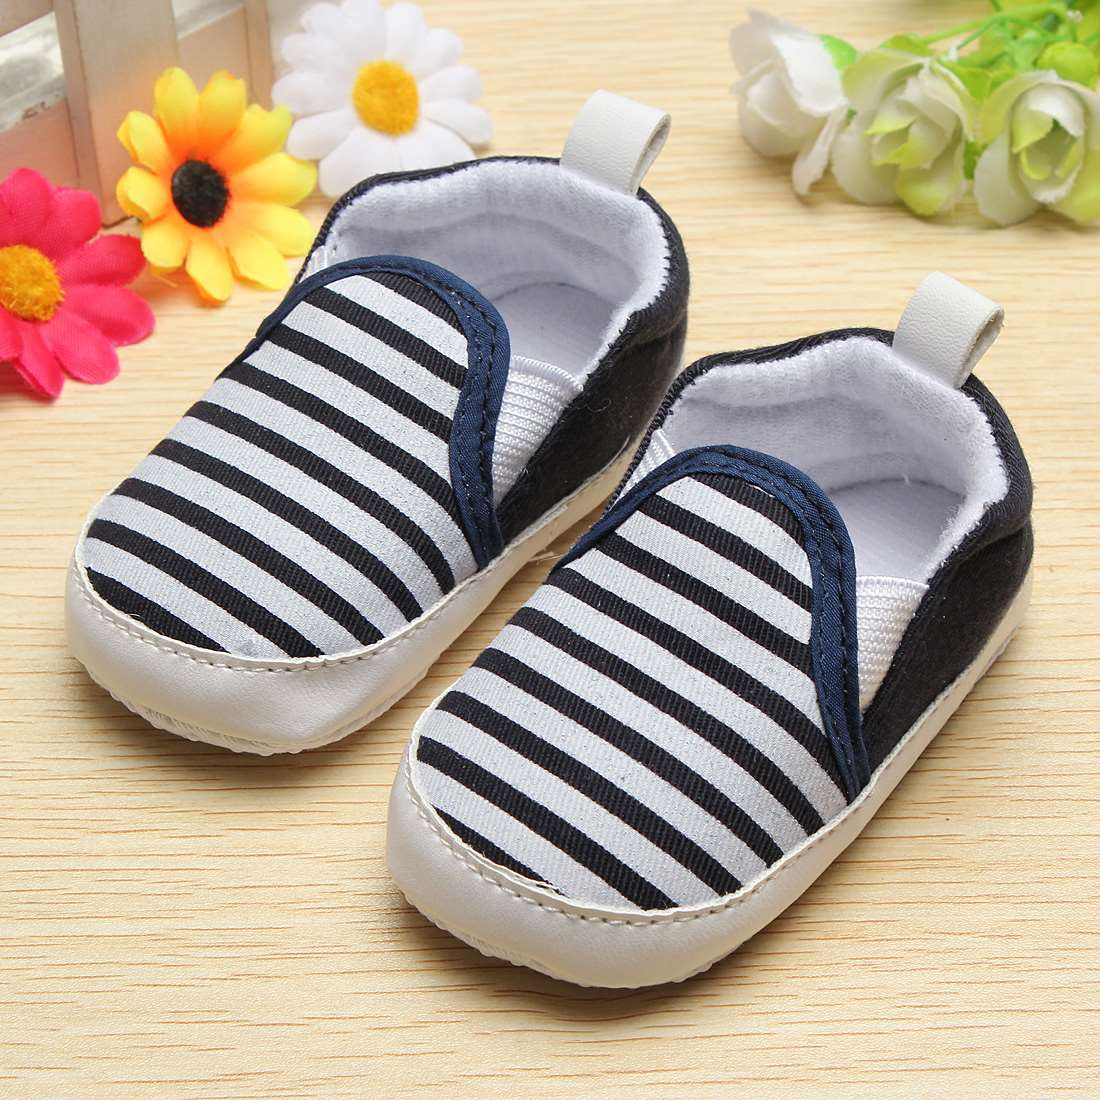 Hot Sale Kids Baby Boy Girl Infant Toddler Stripe Soft Sole Shoes Anti-slip Slip On Casual Crib First walkers Prewalker Shoes(China (Mainland))